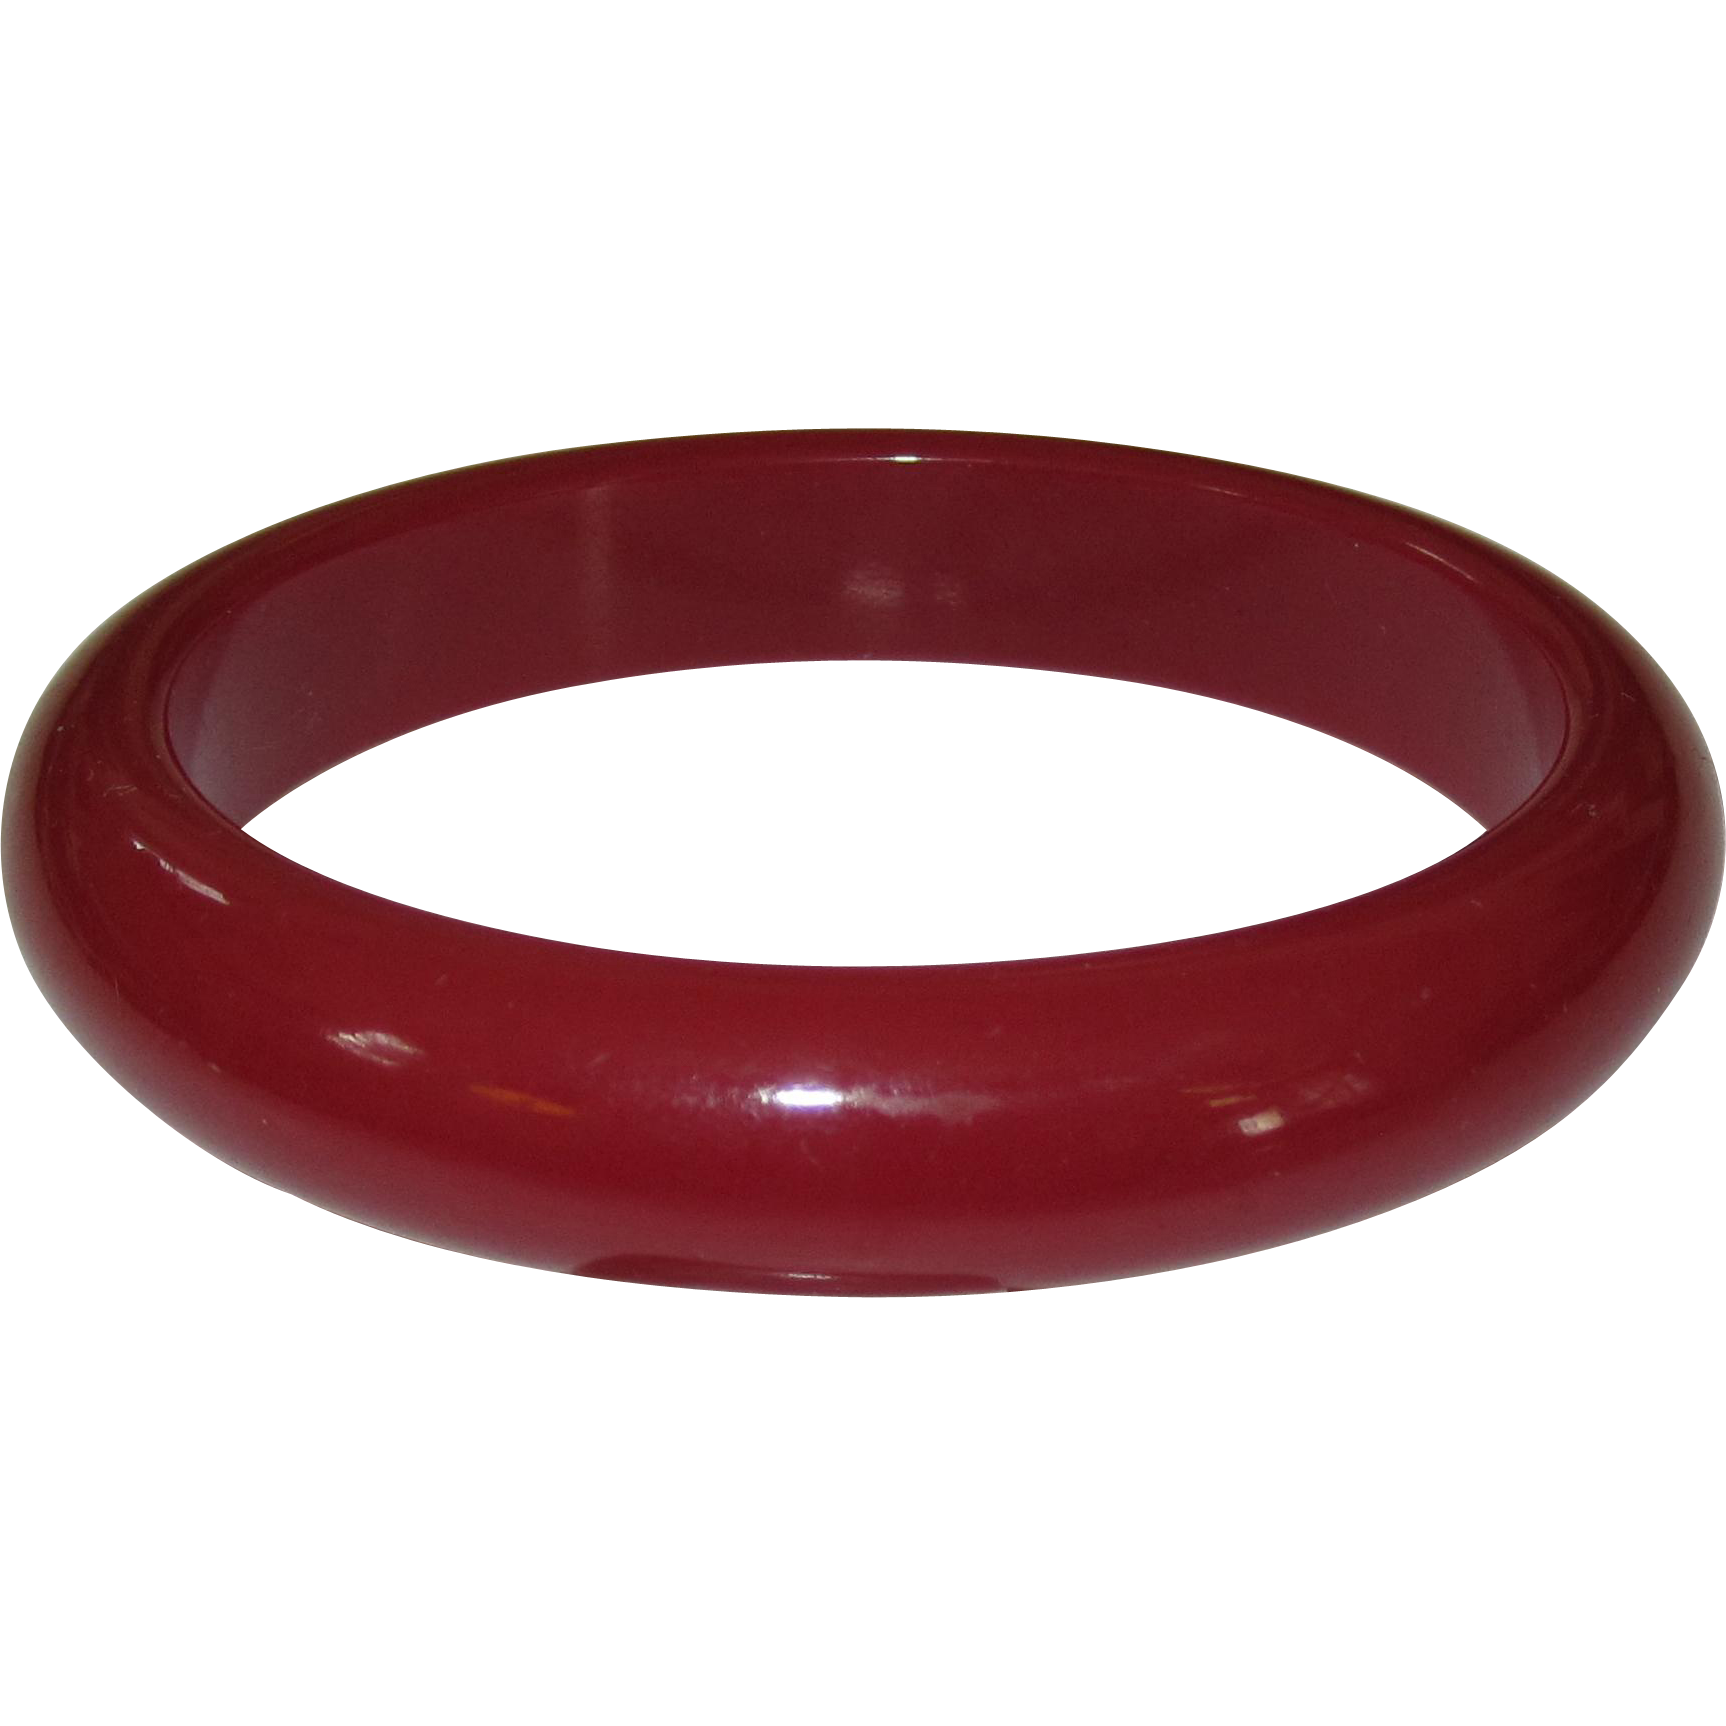 Plummy Red-Purple Bangle Bangle Bracelet